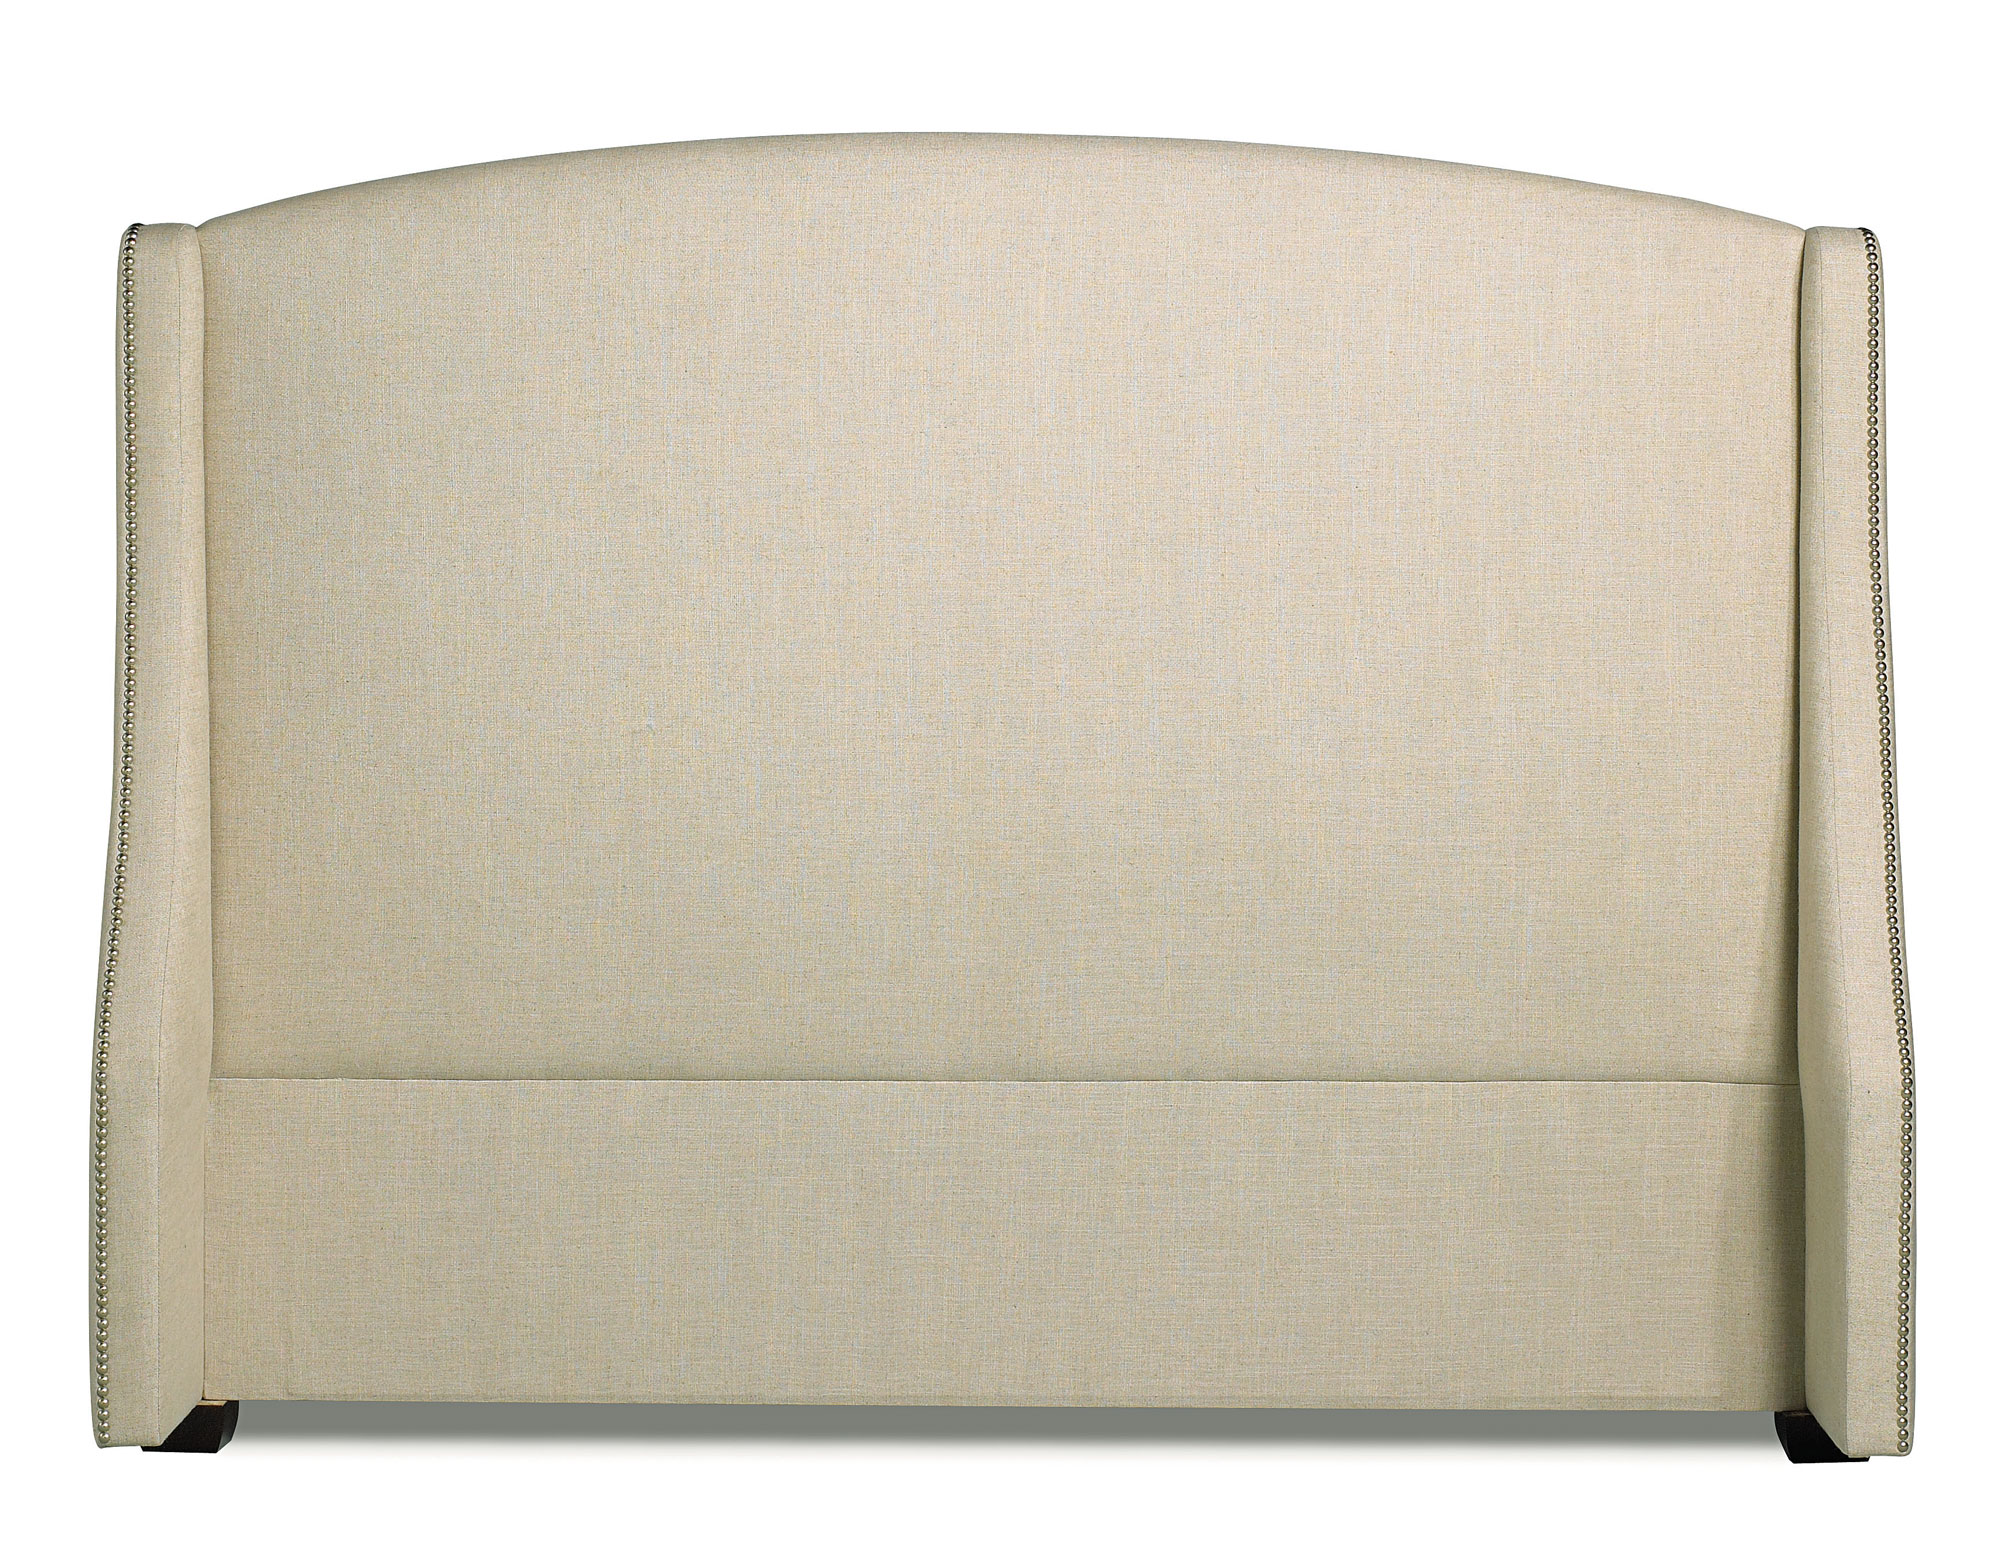 headboard grey the buttons beds in upholstered handmade diamontes winged uk amelie with or